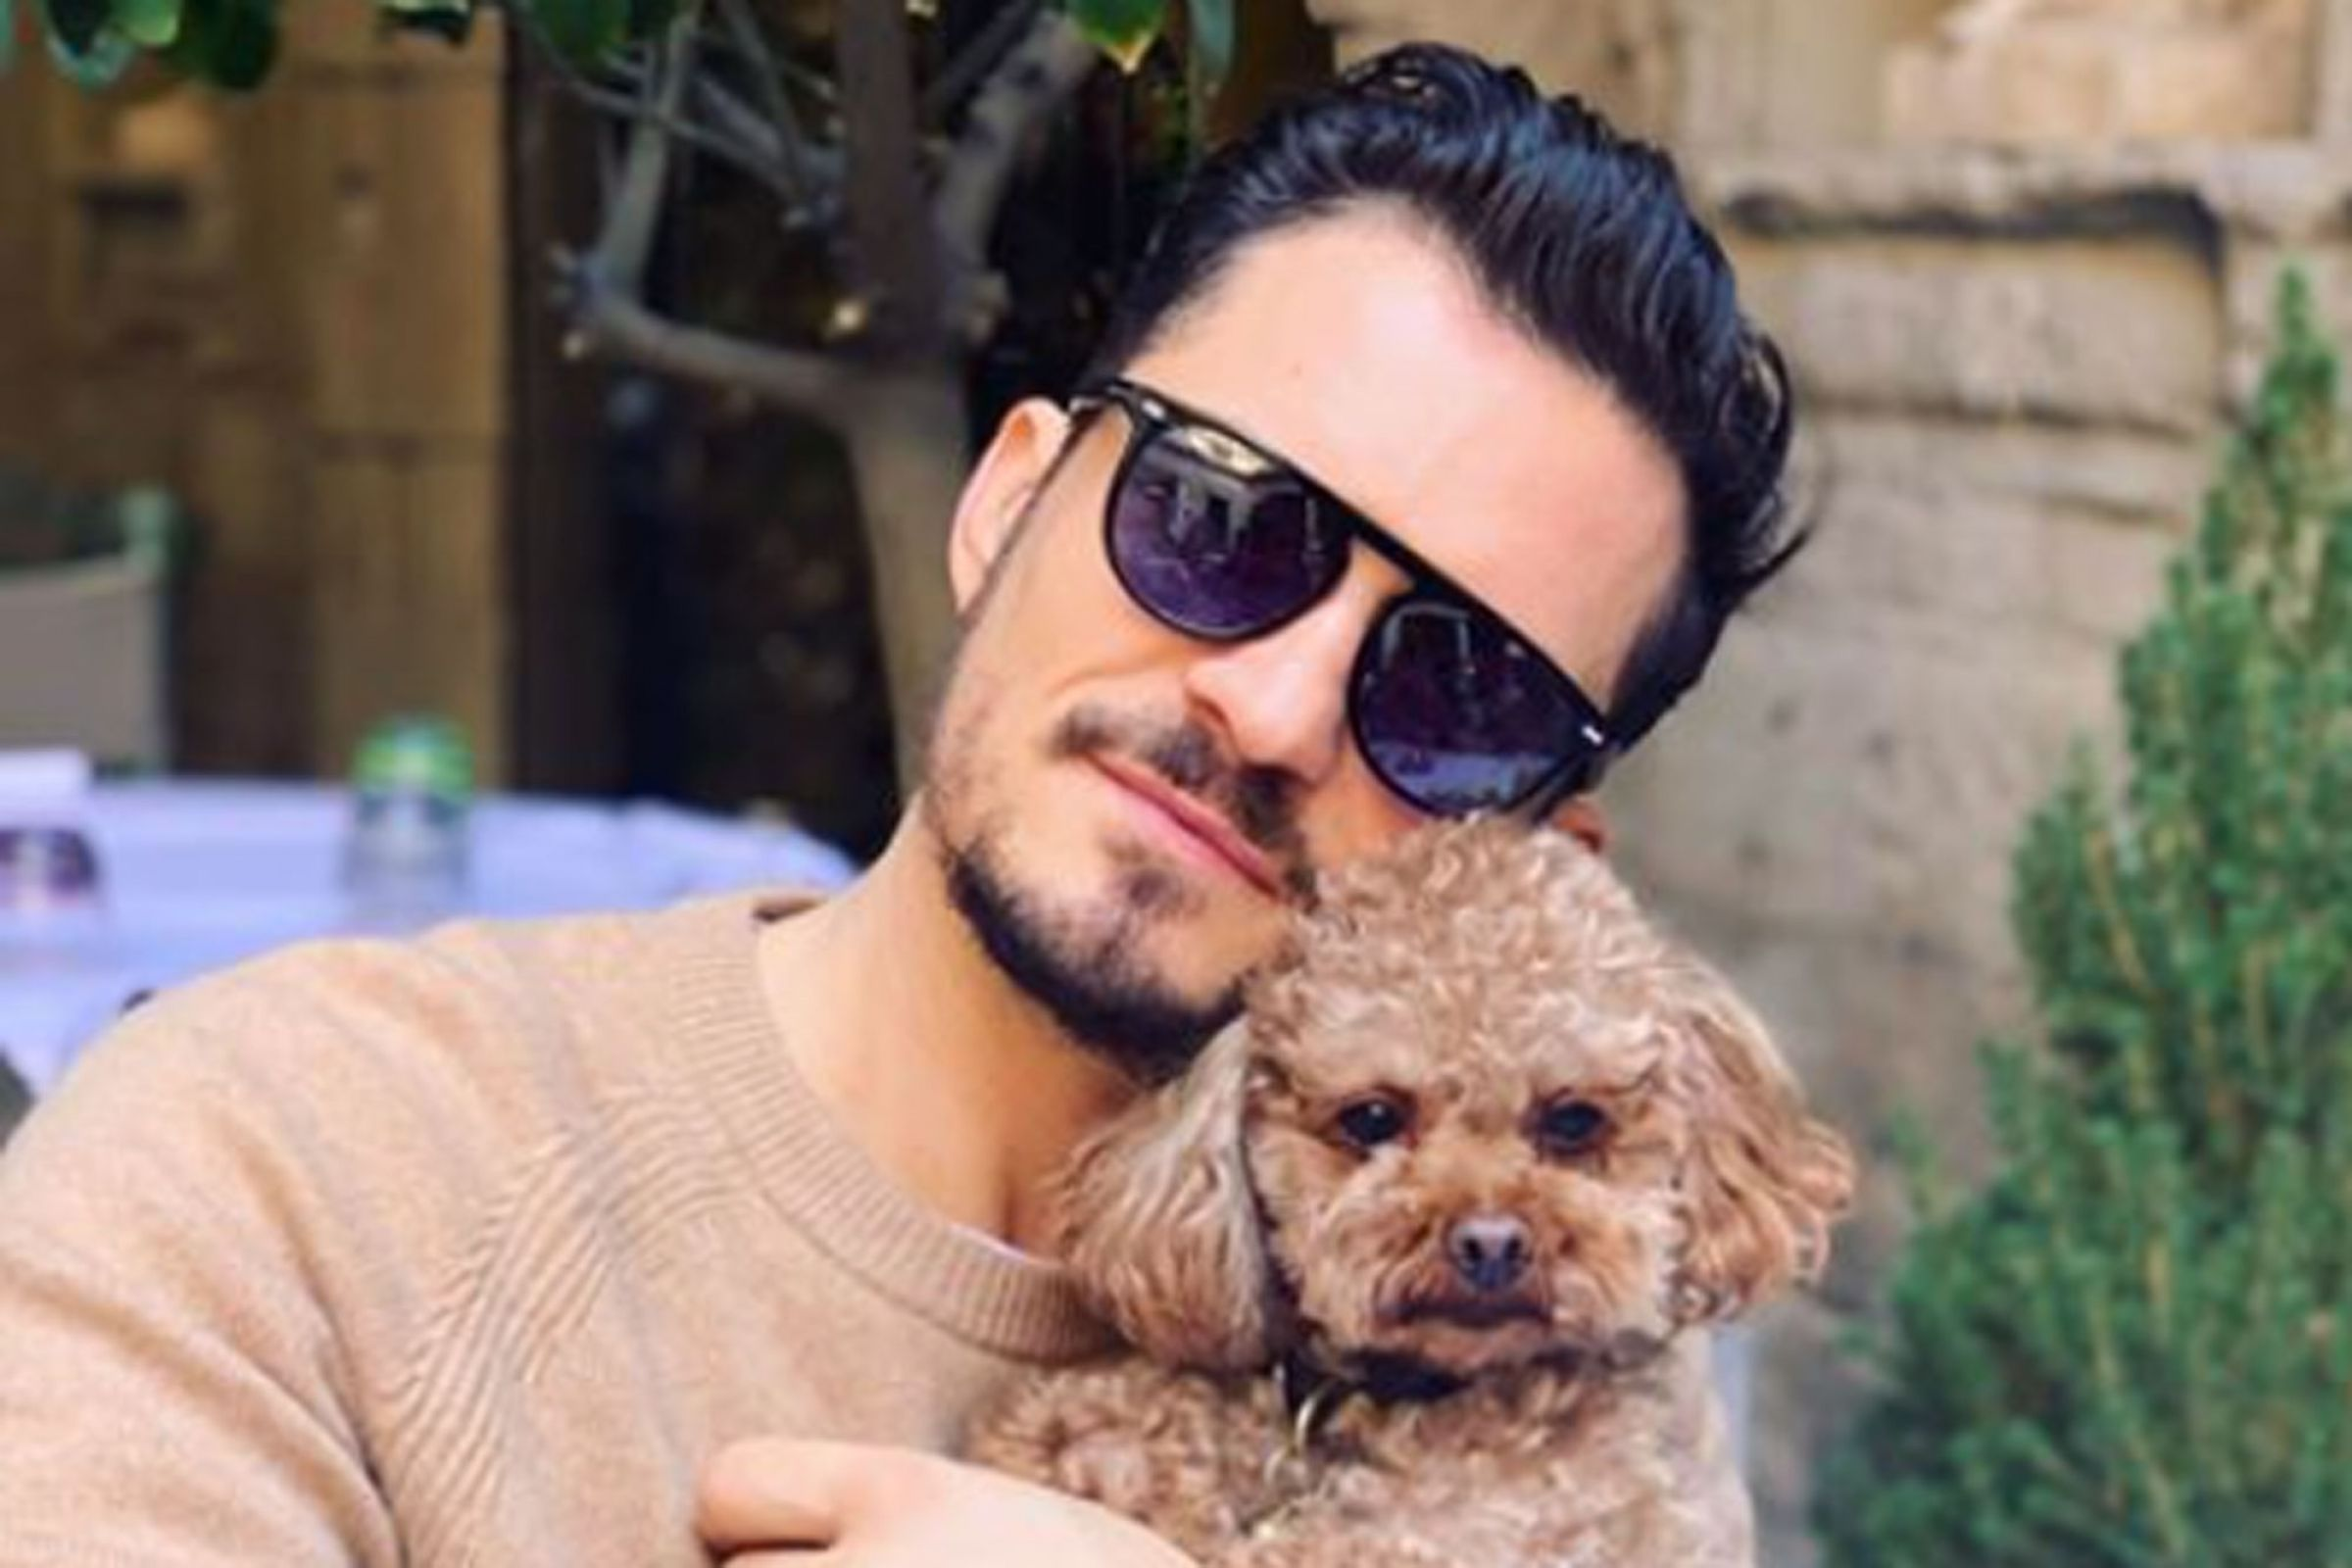 Katy Perry & Orlando Bloom's Dog, Mighty, Is Missing